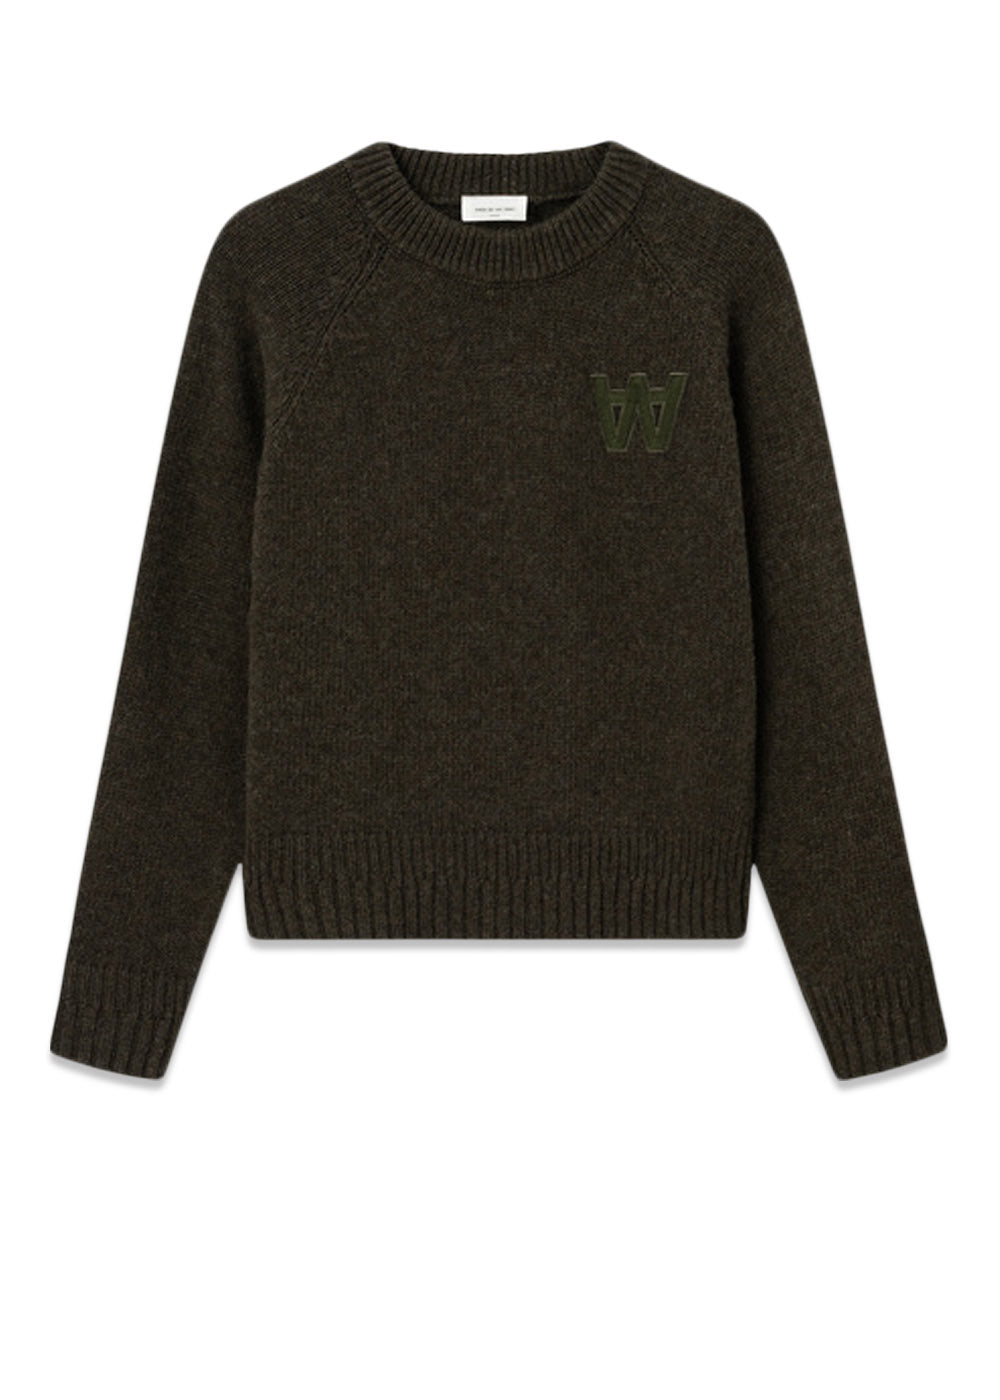 Wood Wood // Asta Jumper - dark green